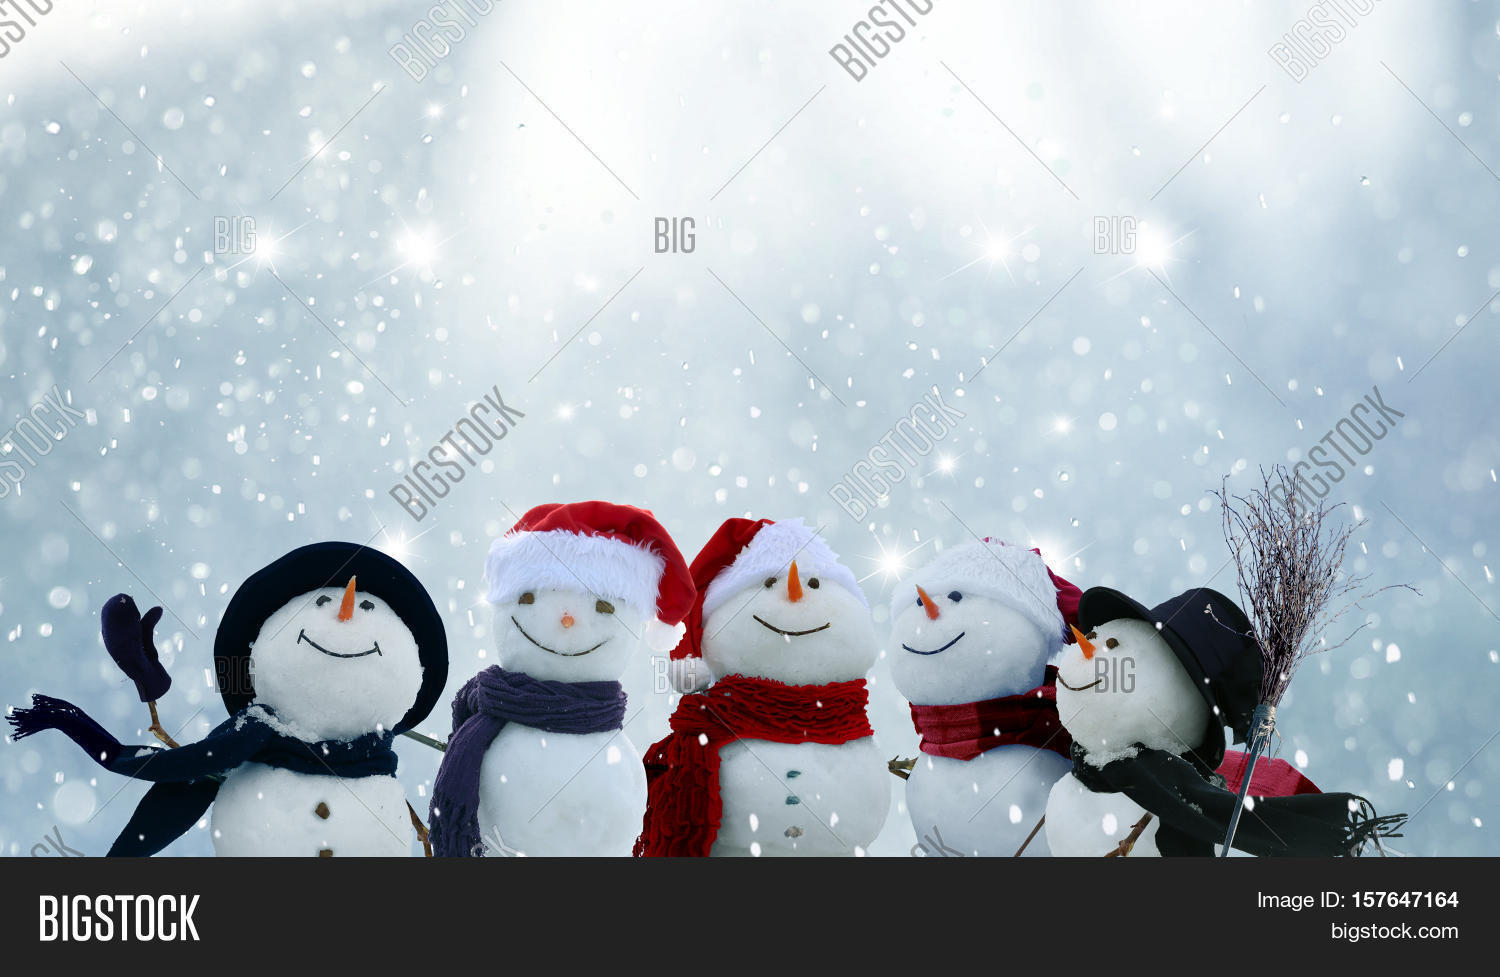 Merry Christmas Happy Image Photo Free Trial Bigstock